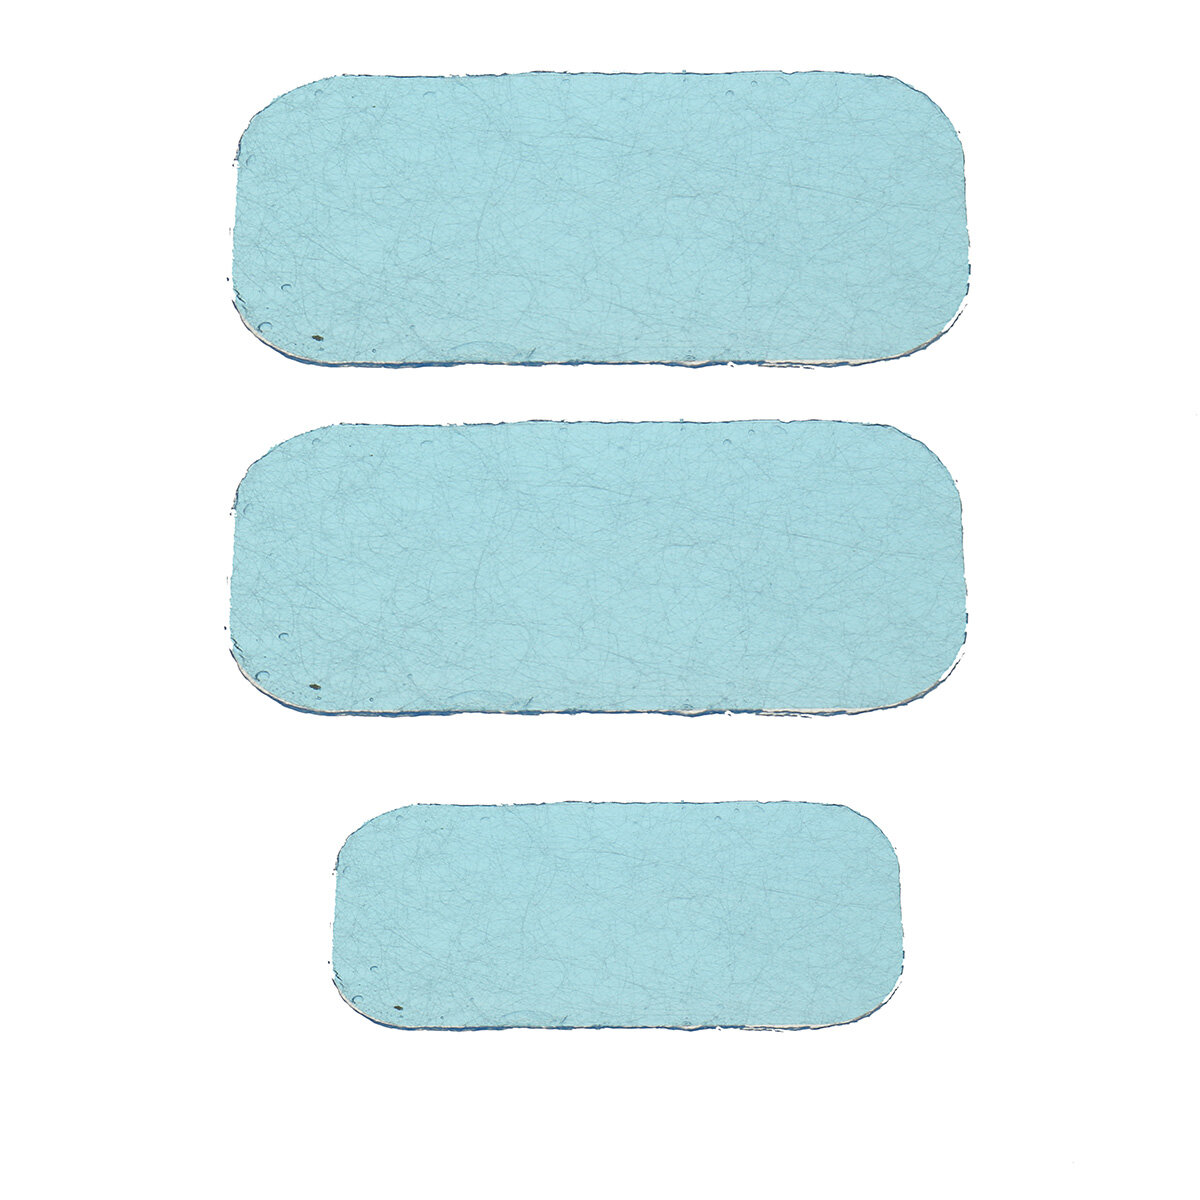 KALOAD General Purpose Irritative Hydrogel Pad Fitness EMS Abdominal Hip Trainer Muscle Stimulator Gel Stickers Patch Replacement